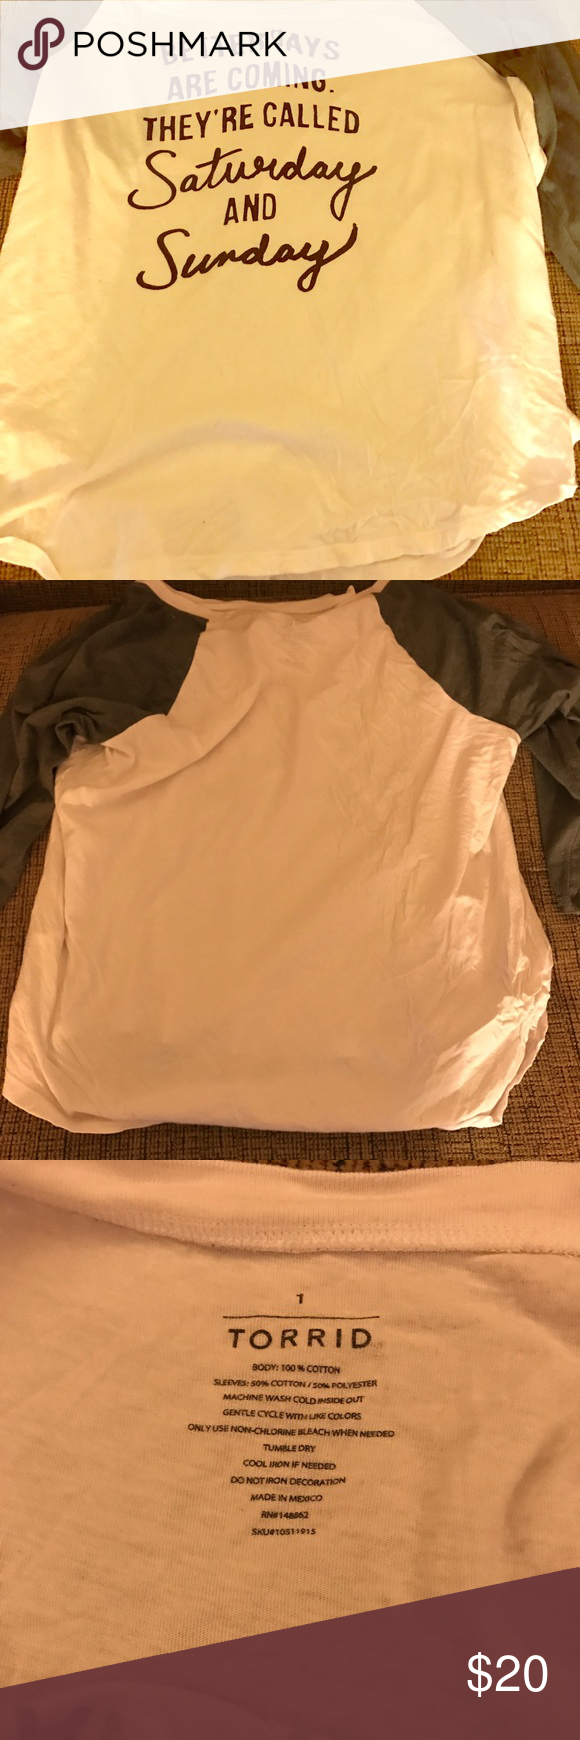 Torrid Raglan Tee size 1 This a raglan tee from Torrid. It's a Torrid size 1 which is equivalent to a size 14/16. It has only been worn a handful of times. It's in excellent condition. It comes from a pet free/smoke free home! torrid Tops Tees - Long Sleeve